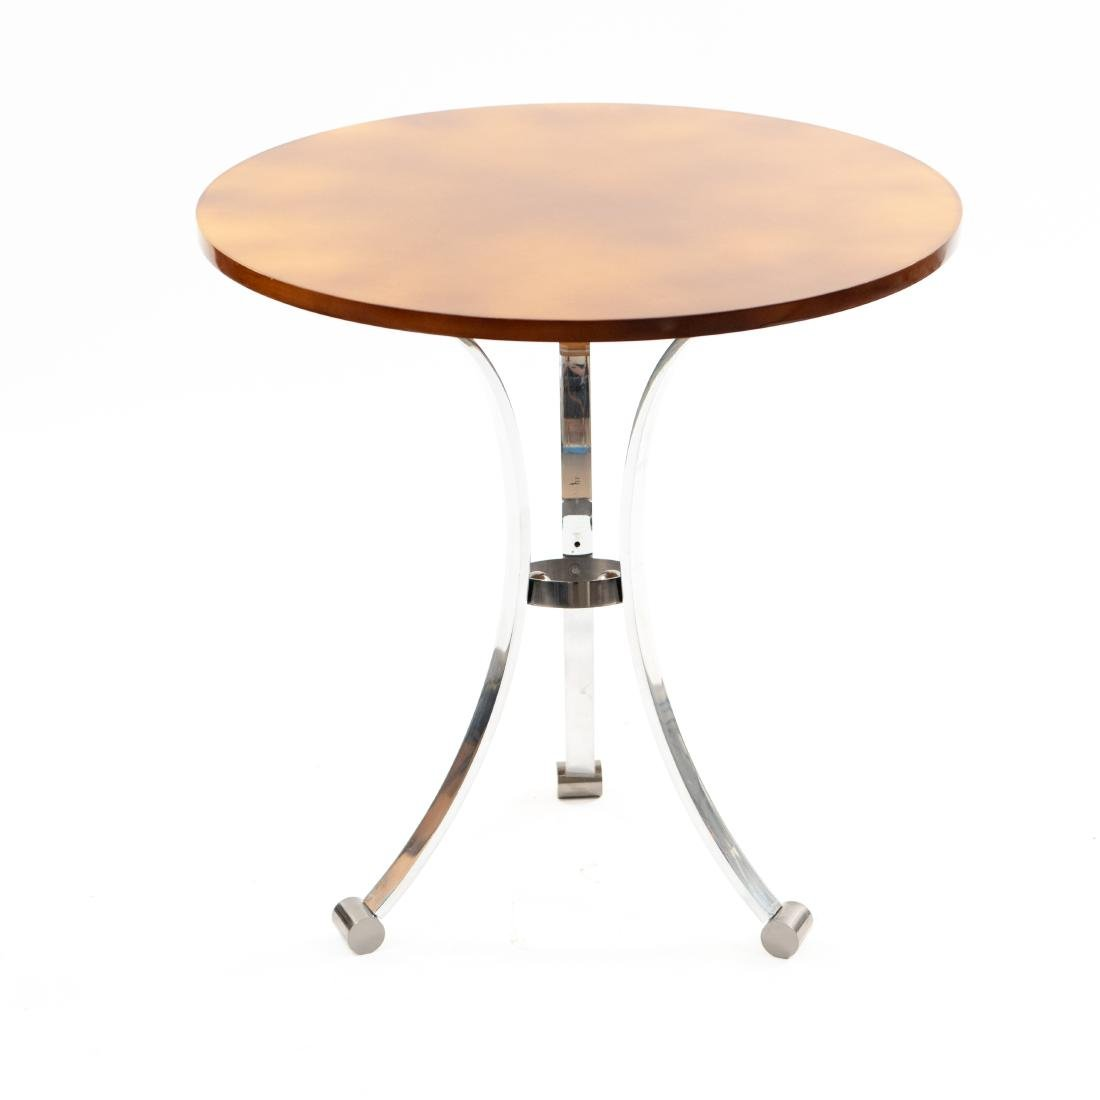 MANNER OF MAISON JANSEN FRENCH LACQUER TABLE